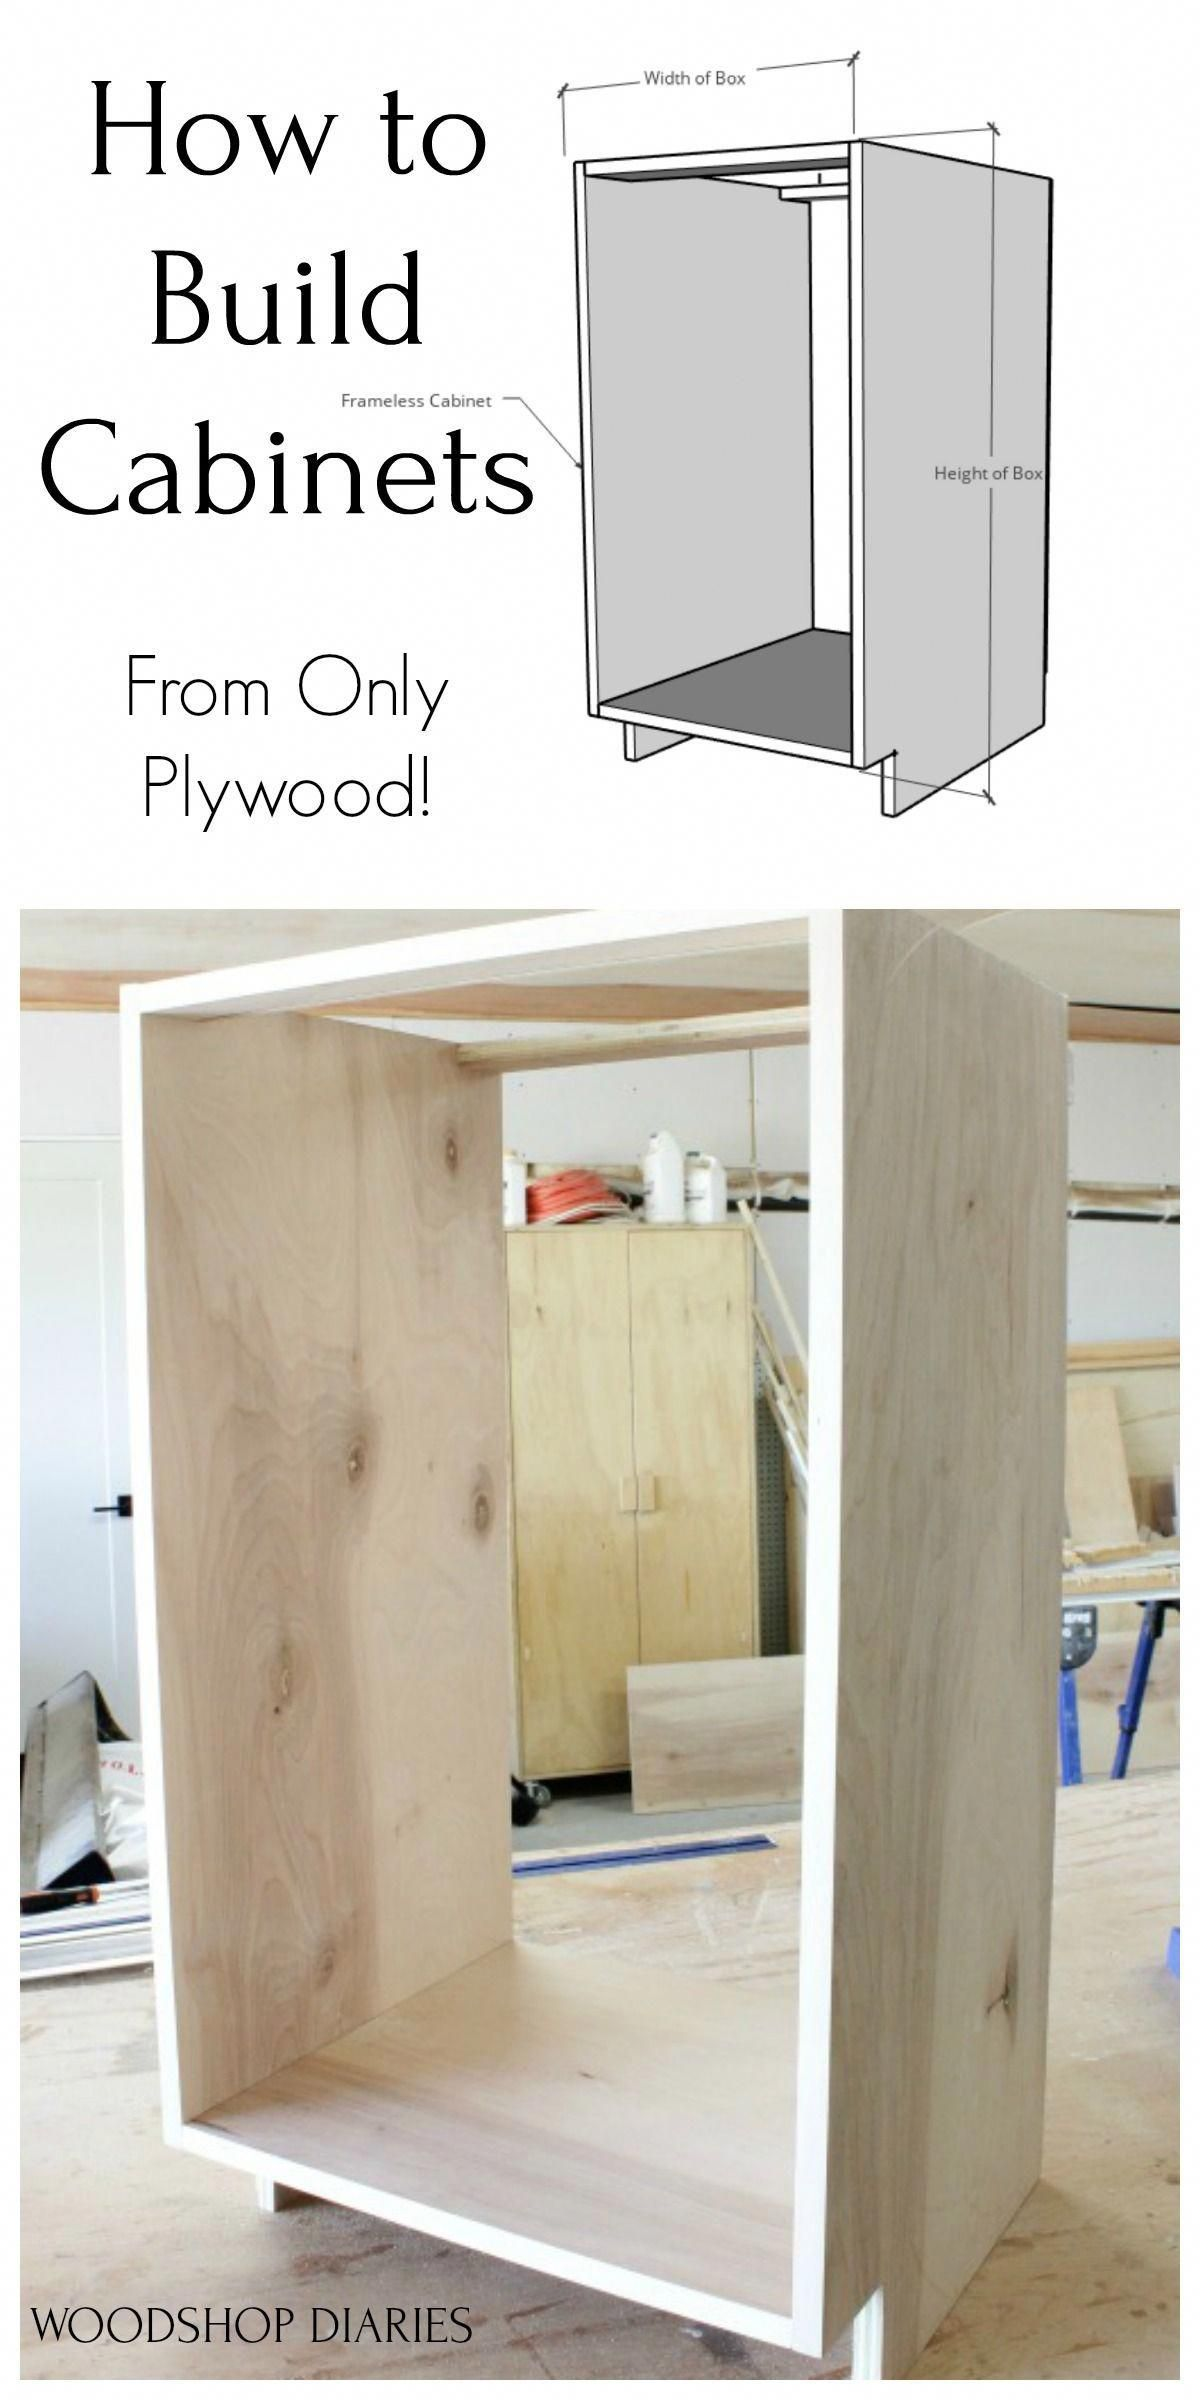 Build Your Own Euro Style Frameless Cabinets With This Simple Tutorial No Milling Fancy In 2020 Woodworking Cabinets Building Kitchen Cabinets Diy Kitchen Cabinets